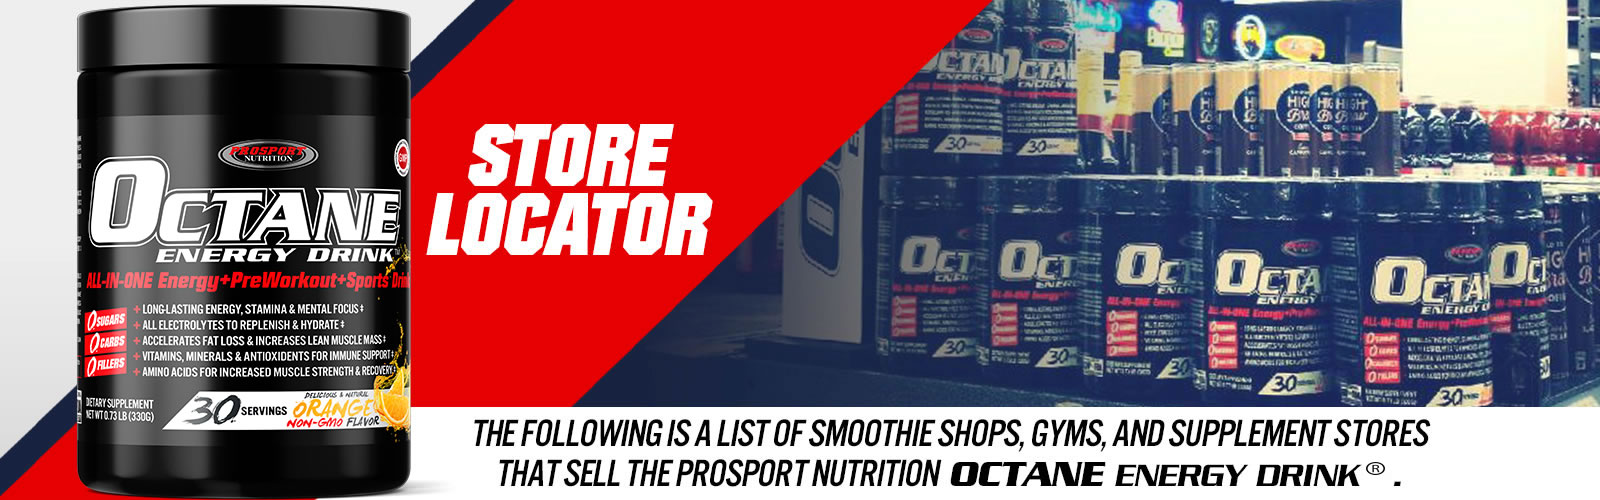 ProSport Nutrition Product Retailers